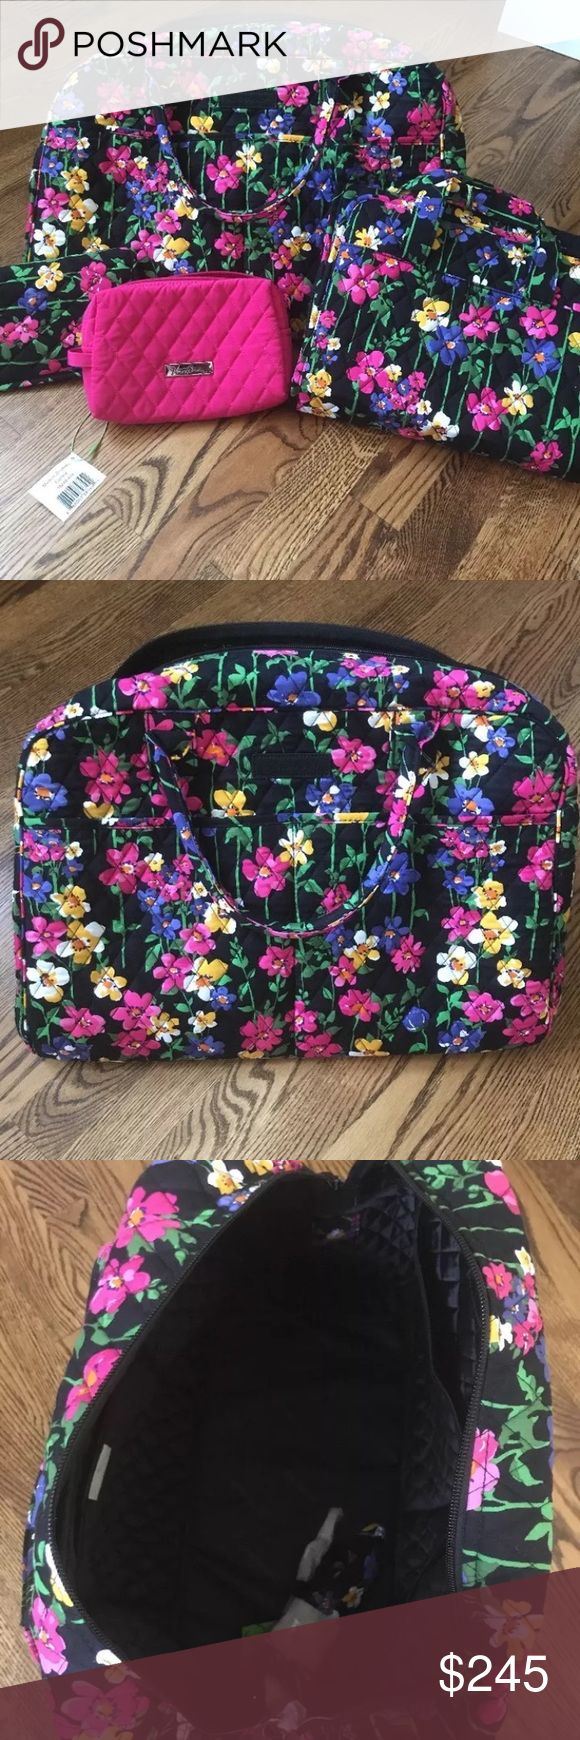 Vera Bradley Brand New Travel Bag Collection Collection of Vera Bradley travel bags in Wildflower Garden pattern. Includes Weekender travel bag, Hanging Organizer for cosmetics/toiletries, Curling & Flat Iron Cover, and Medium Cosmetic bag in Fuchsia. Never been used Vera Bradley Bags Cosmetic Bags & Cases